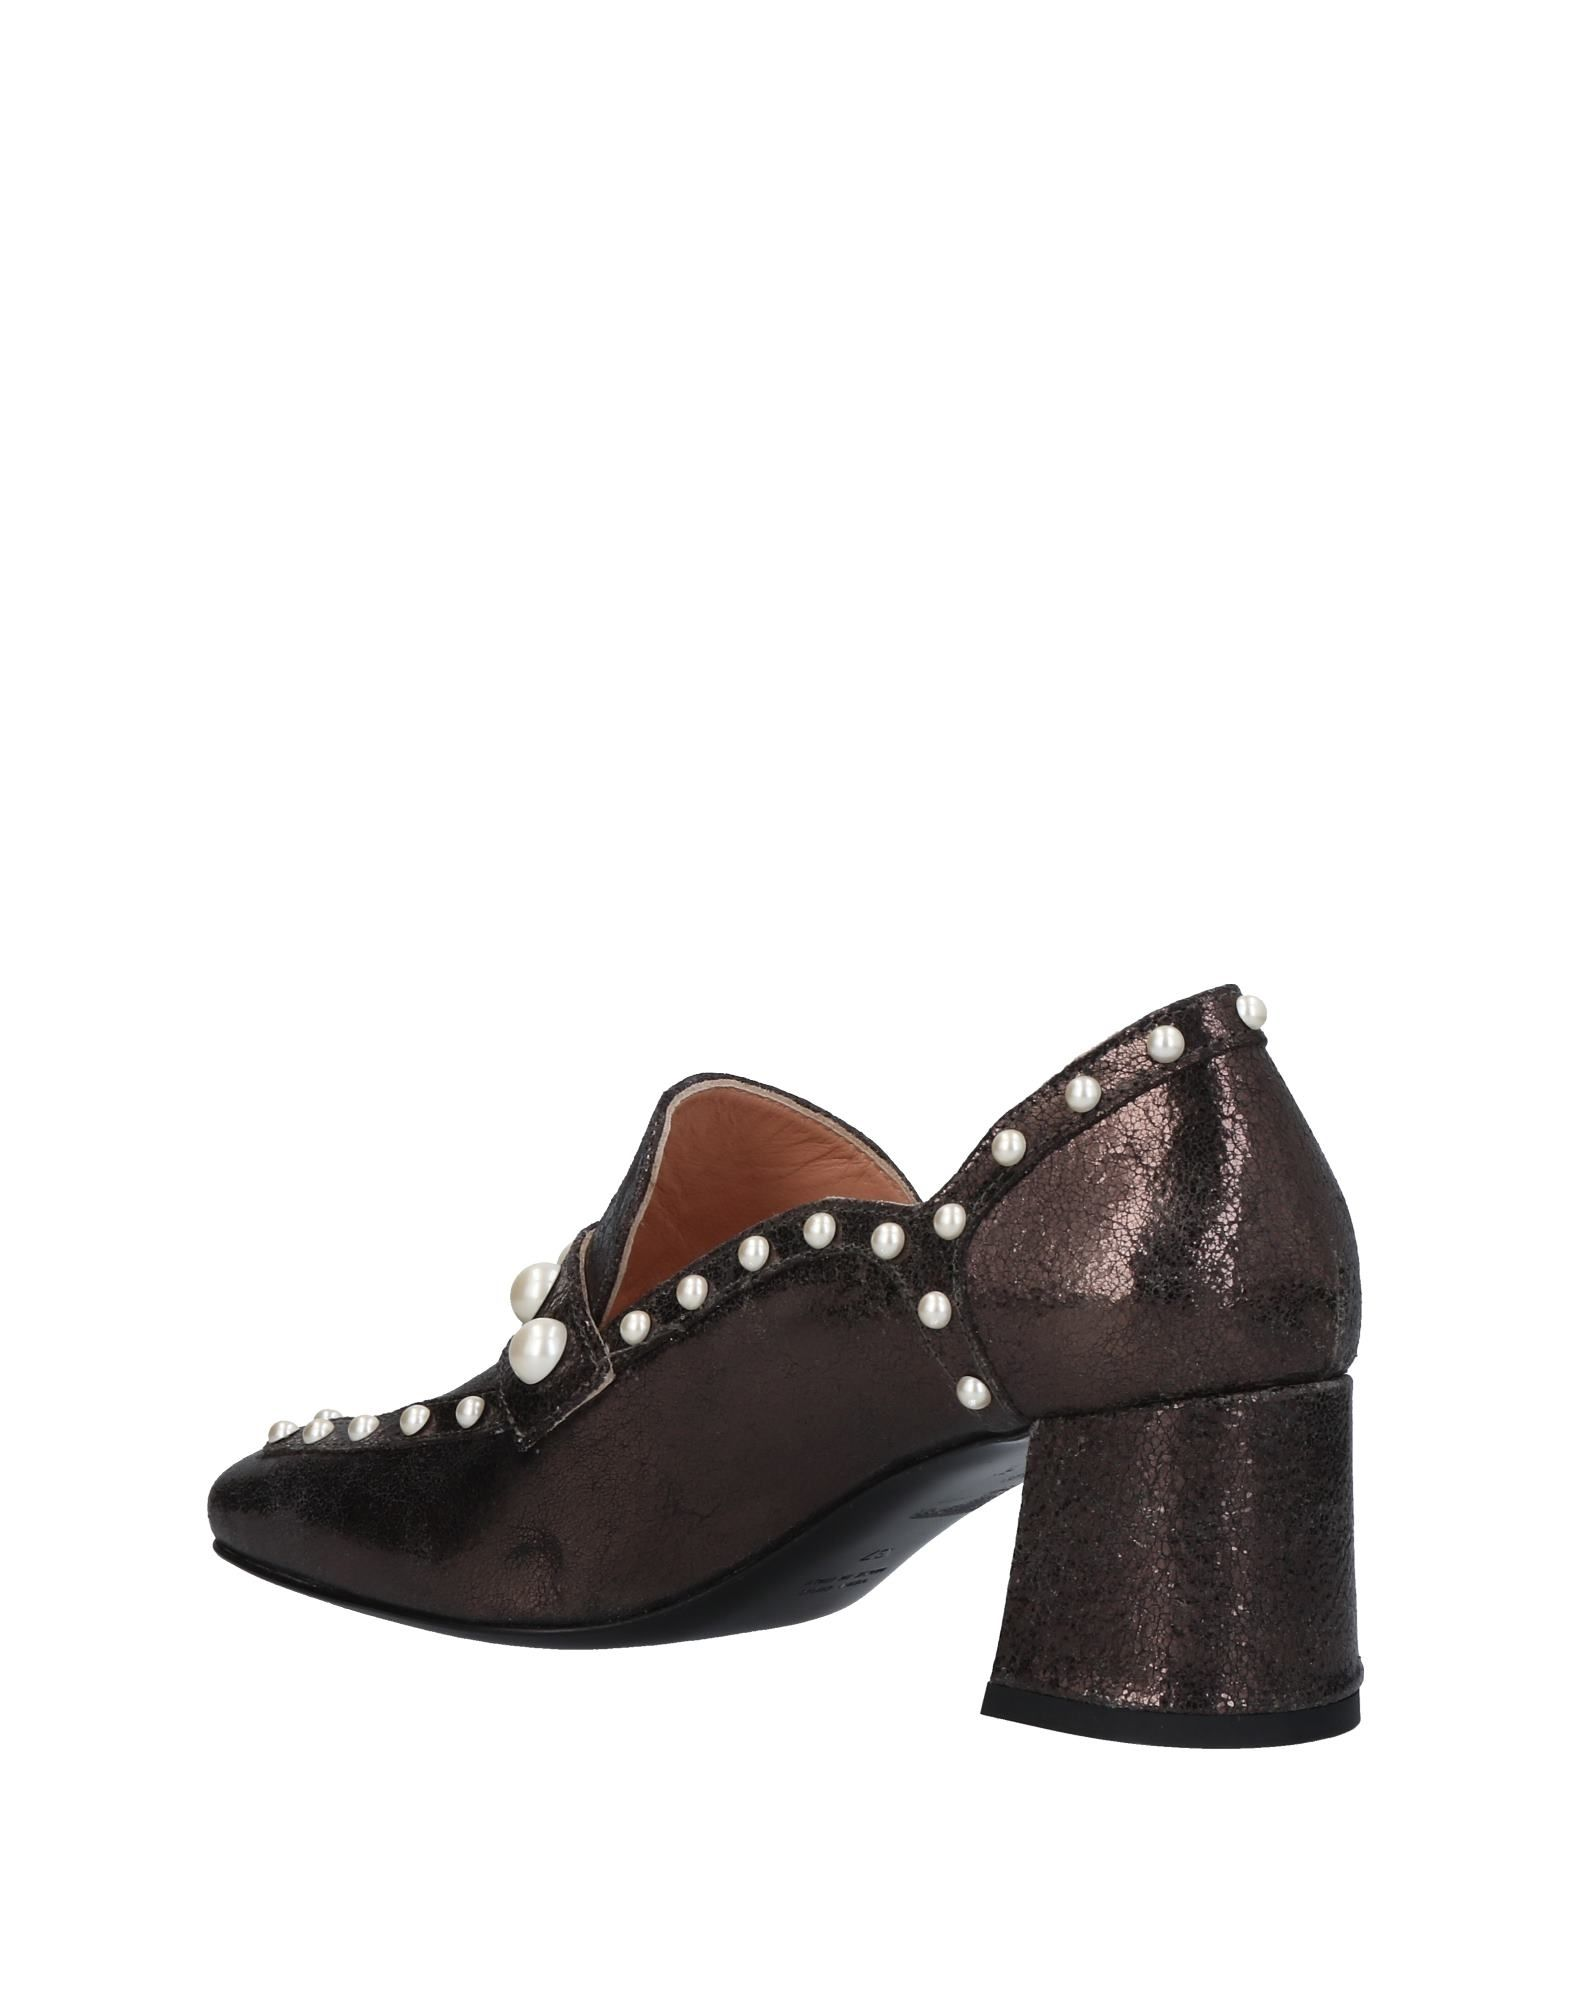 Jucca Loafers Loafers - Women Jucca Loafers Jucca online on  United Kingdom - 11422766QD 3cdd64